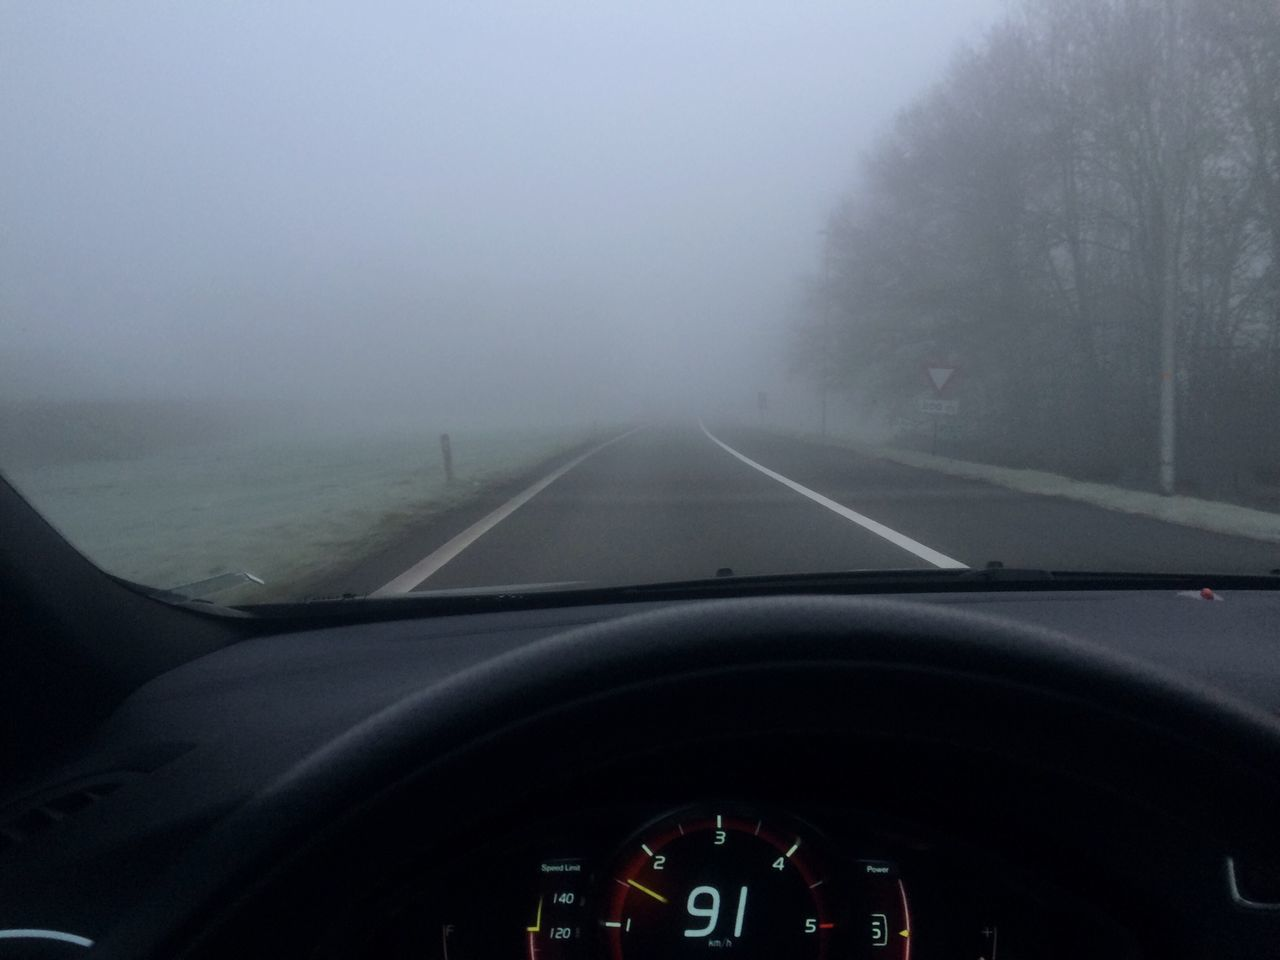 Early Morning Misty Morning Volvo Outdoors Hello World Check This Out Where Are You Going?